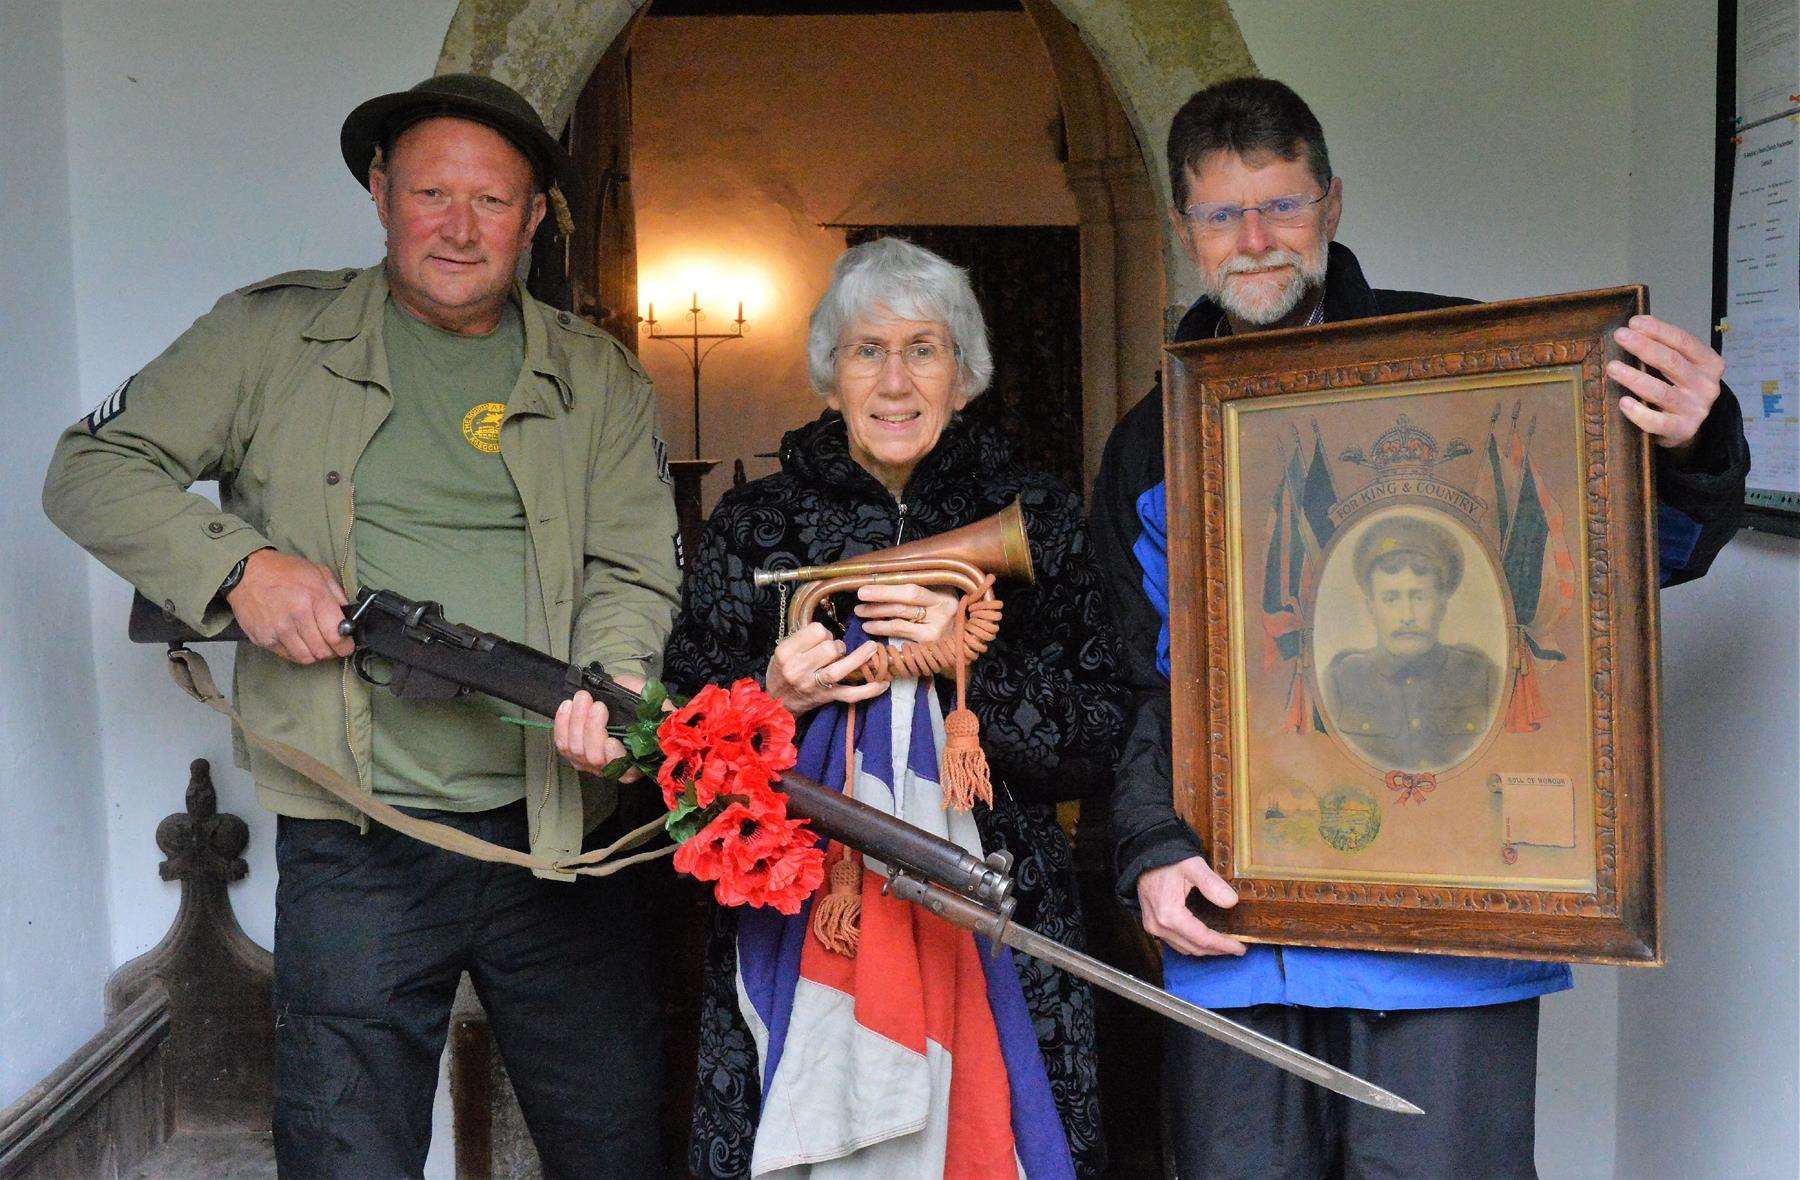 Mick King, Brenda Knowles and John Leitch display some of the many items on show at an exhibition of World War One memorabilia at St Andrew's Church, Freckenham. The exhibition continues until 5pm on Sunday and can be viewed after the 10.45am remembrance service at the war memorial inside the church gates when wreaths will be laid and the two-minute silence observed.